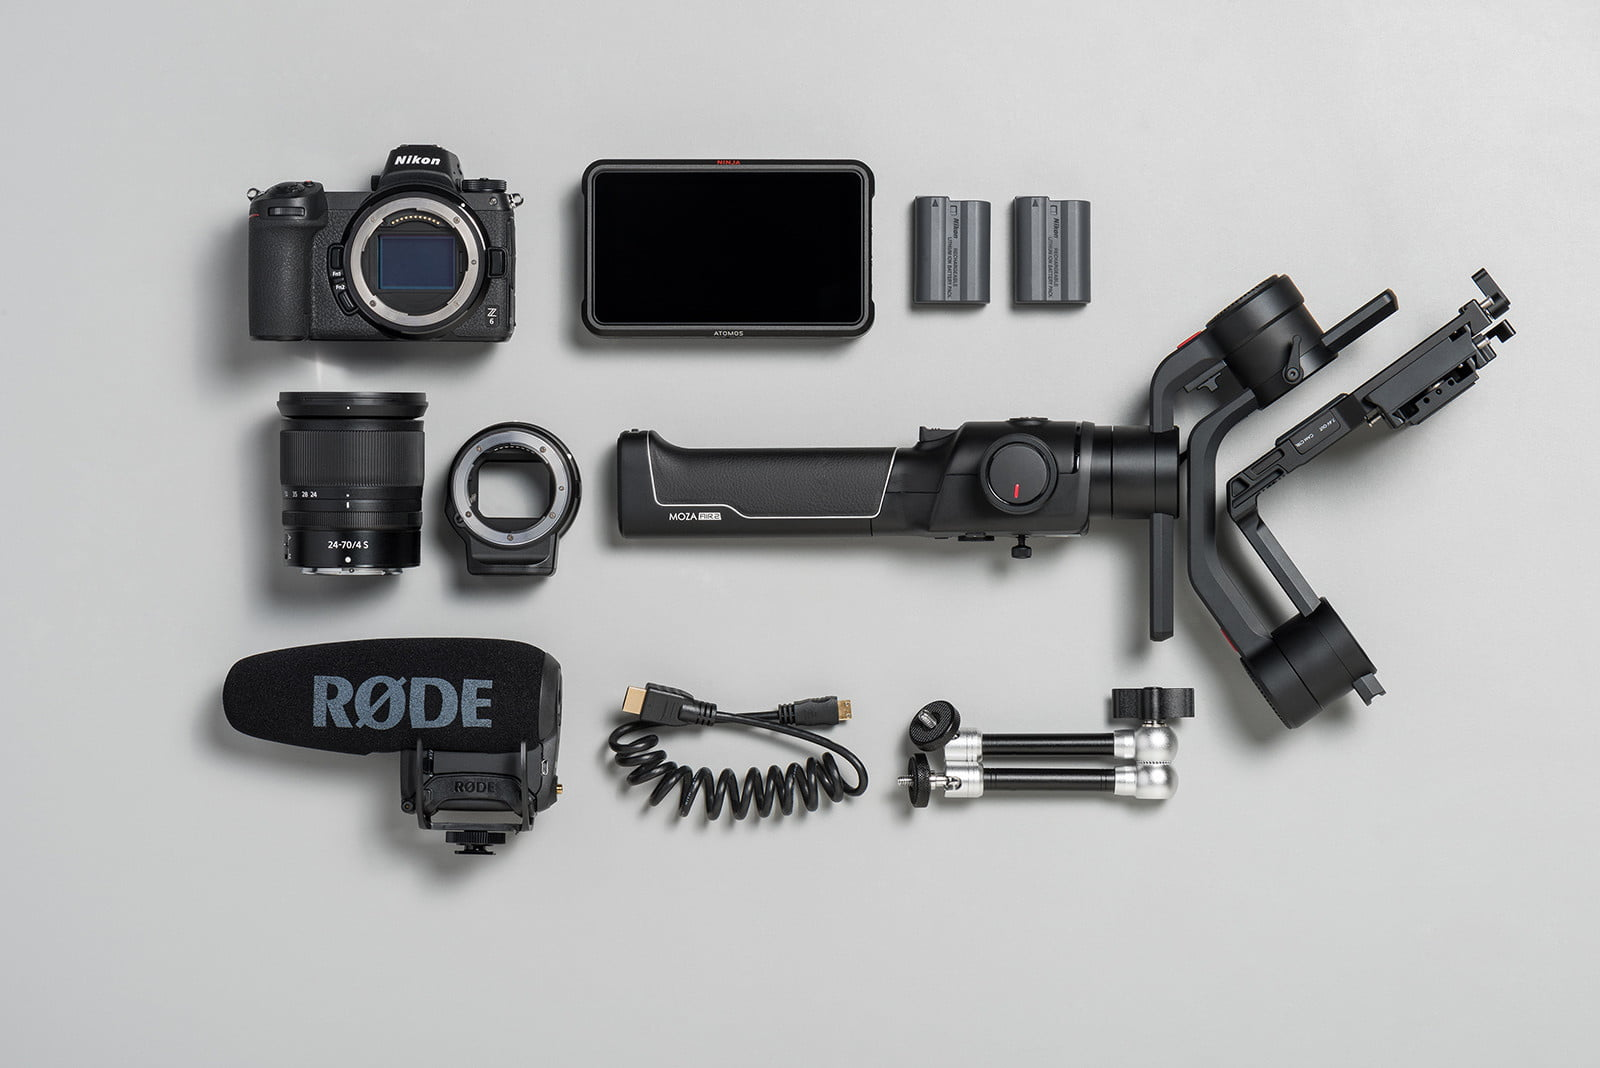 With Addition of RAW Video, Nikon Z Series Will to Win Over